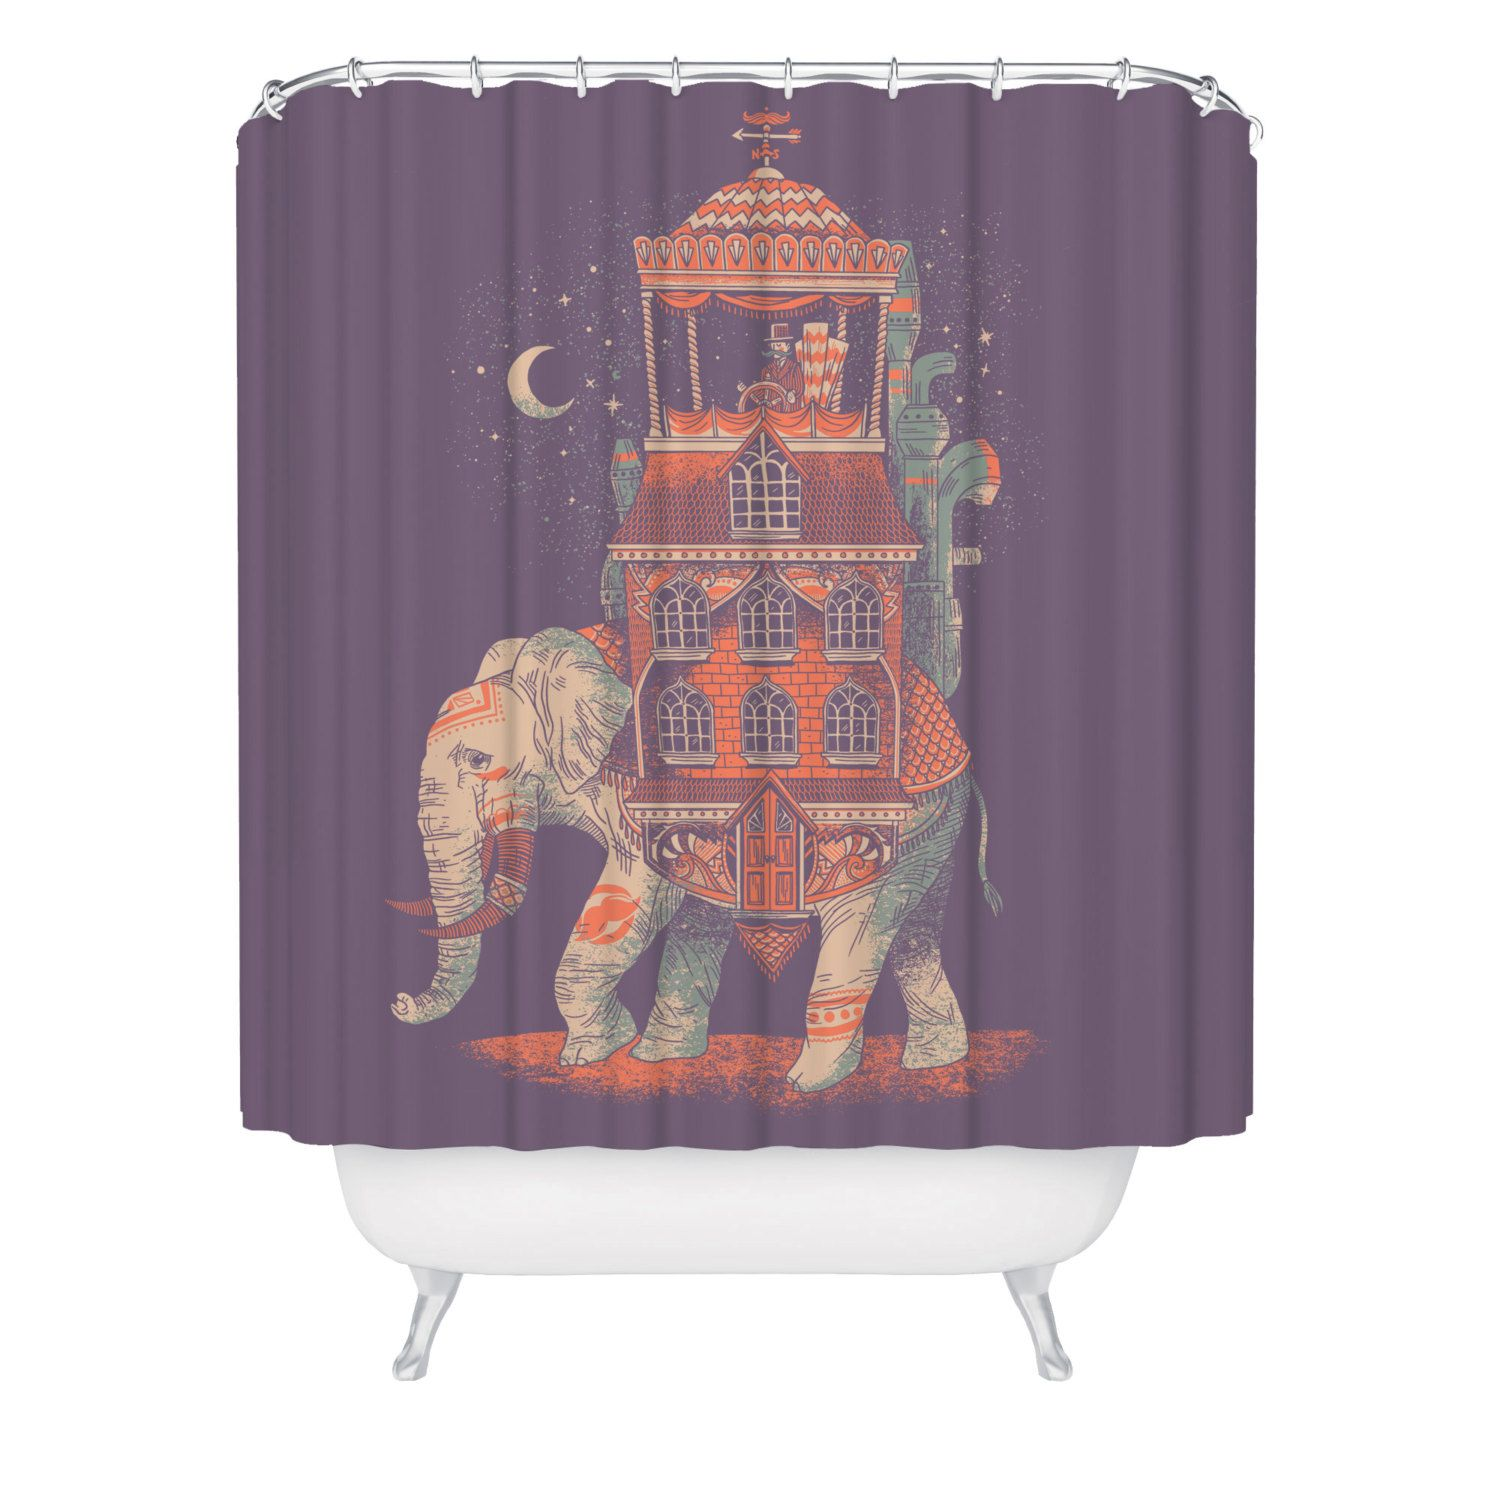 Elephant Shower Curtain Trunk Of Treasures Beautiful Animal Made In USA